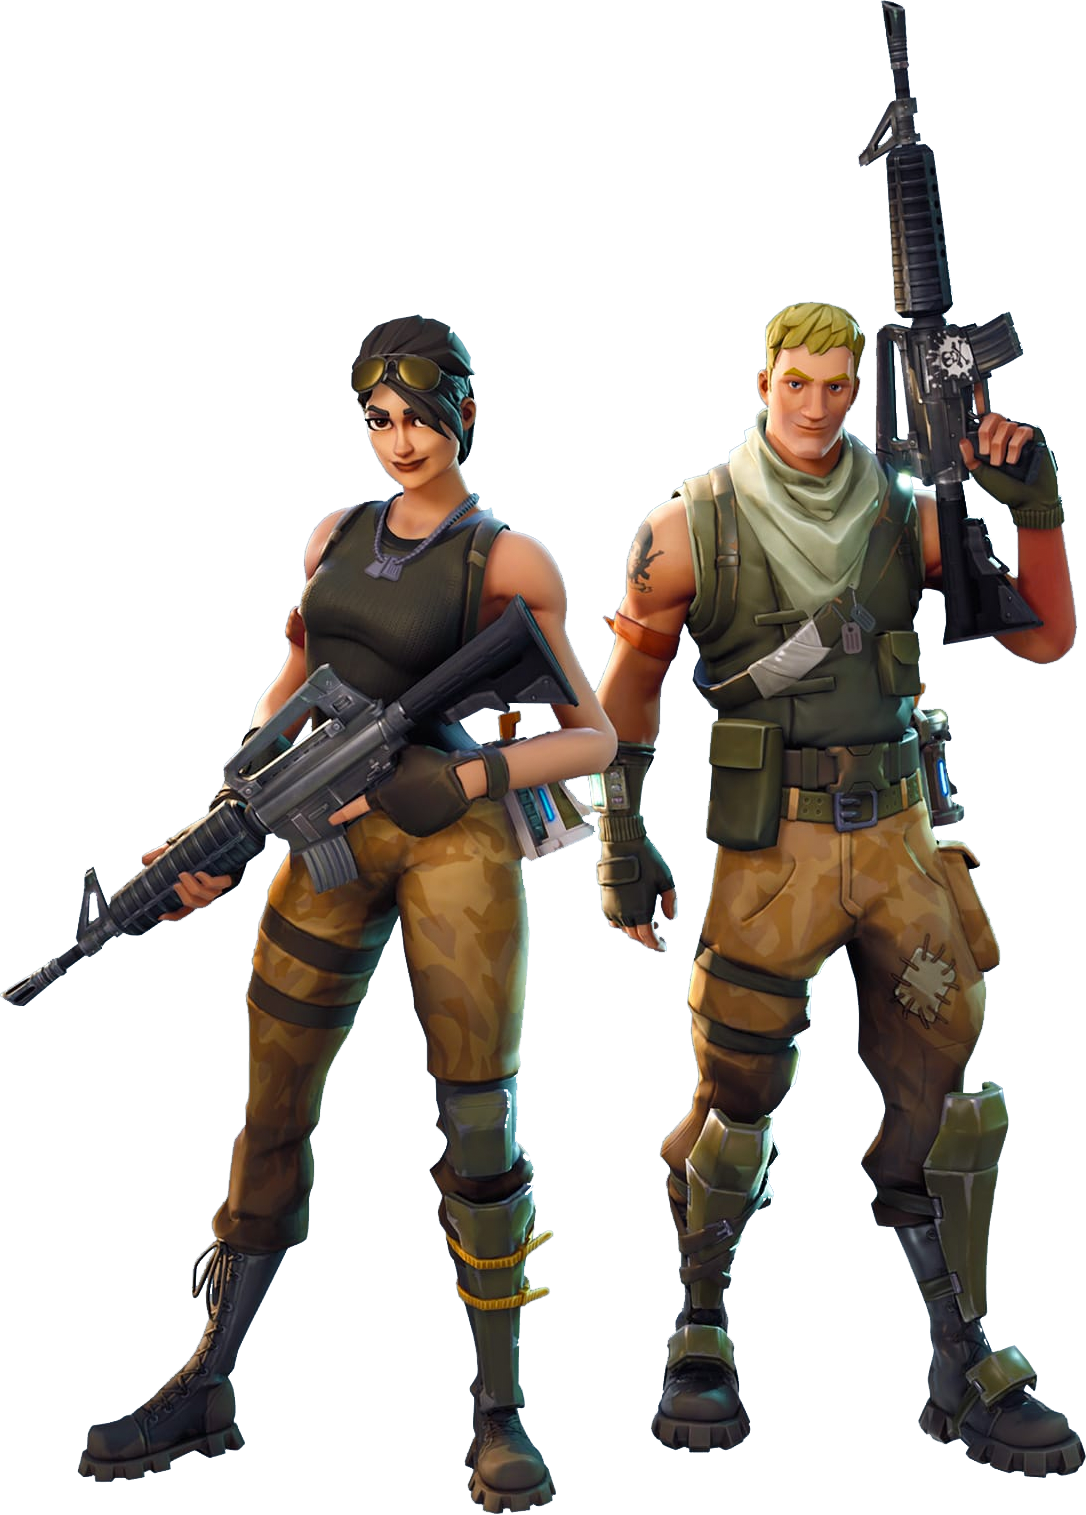 Soldier - Fortnite Wiki